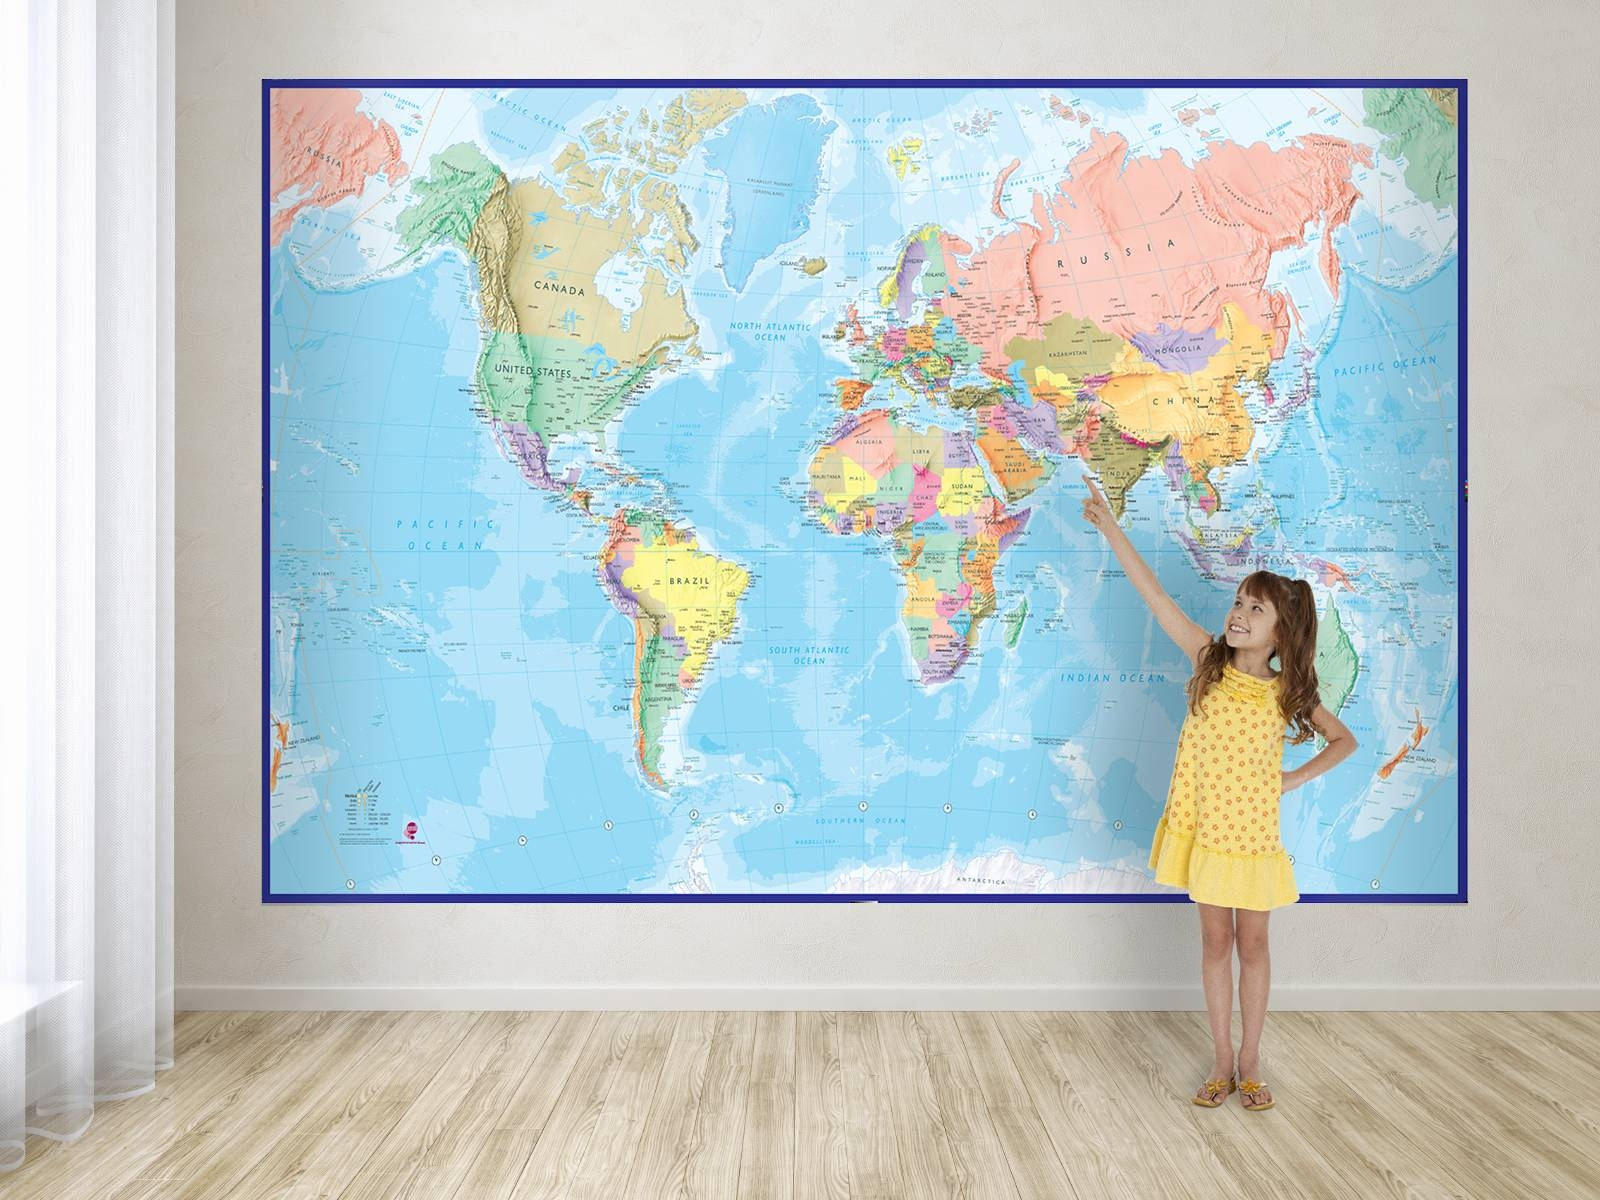 Image Gallery of Large World Map Wall Art (View 18 of 20 Photos)